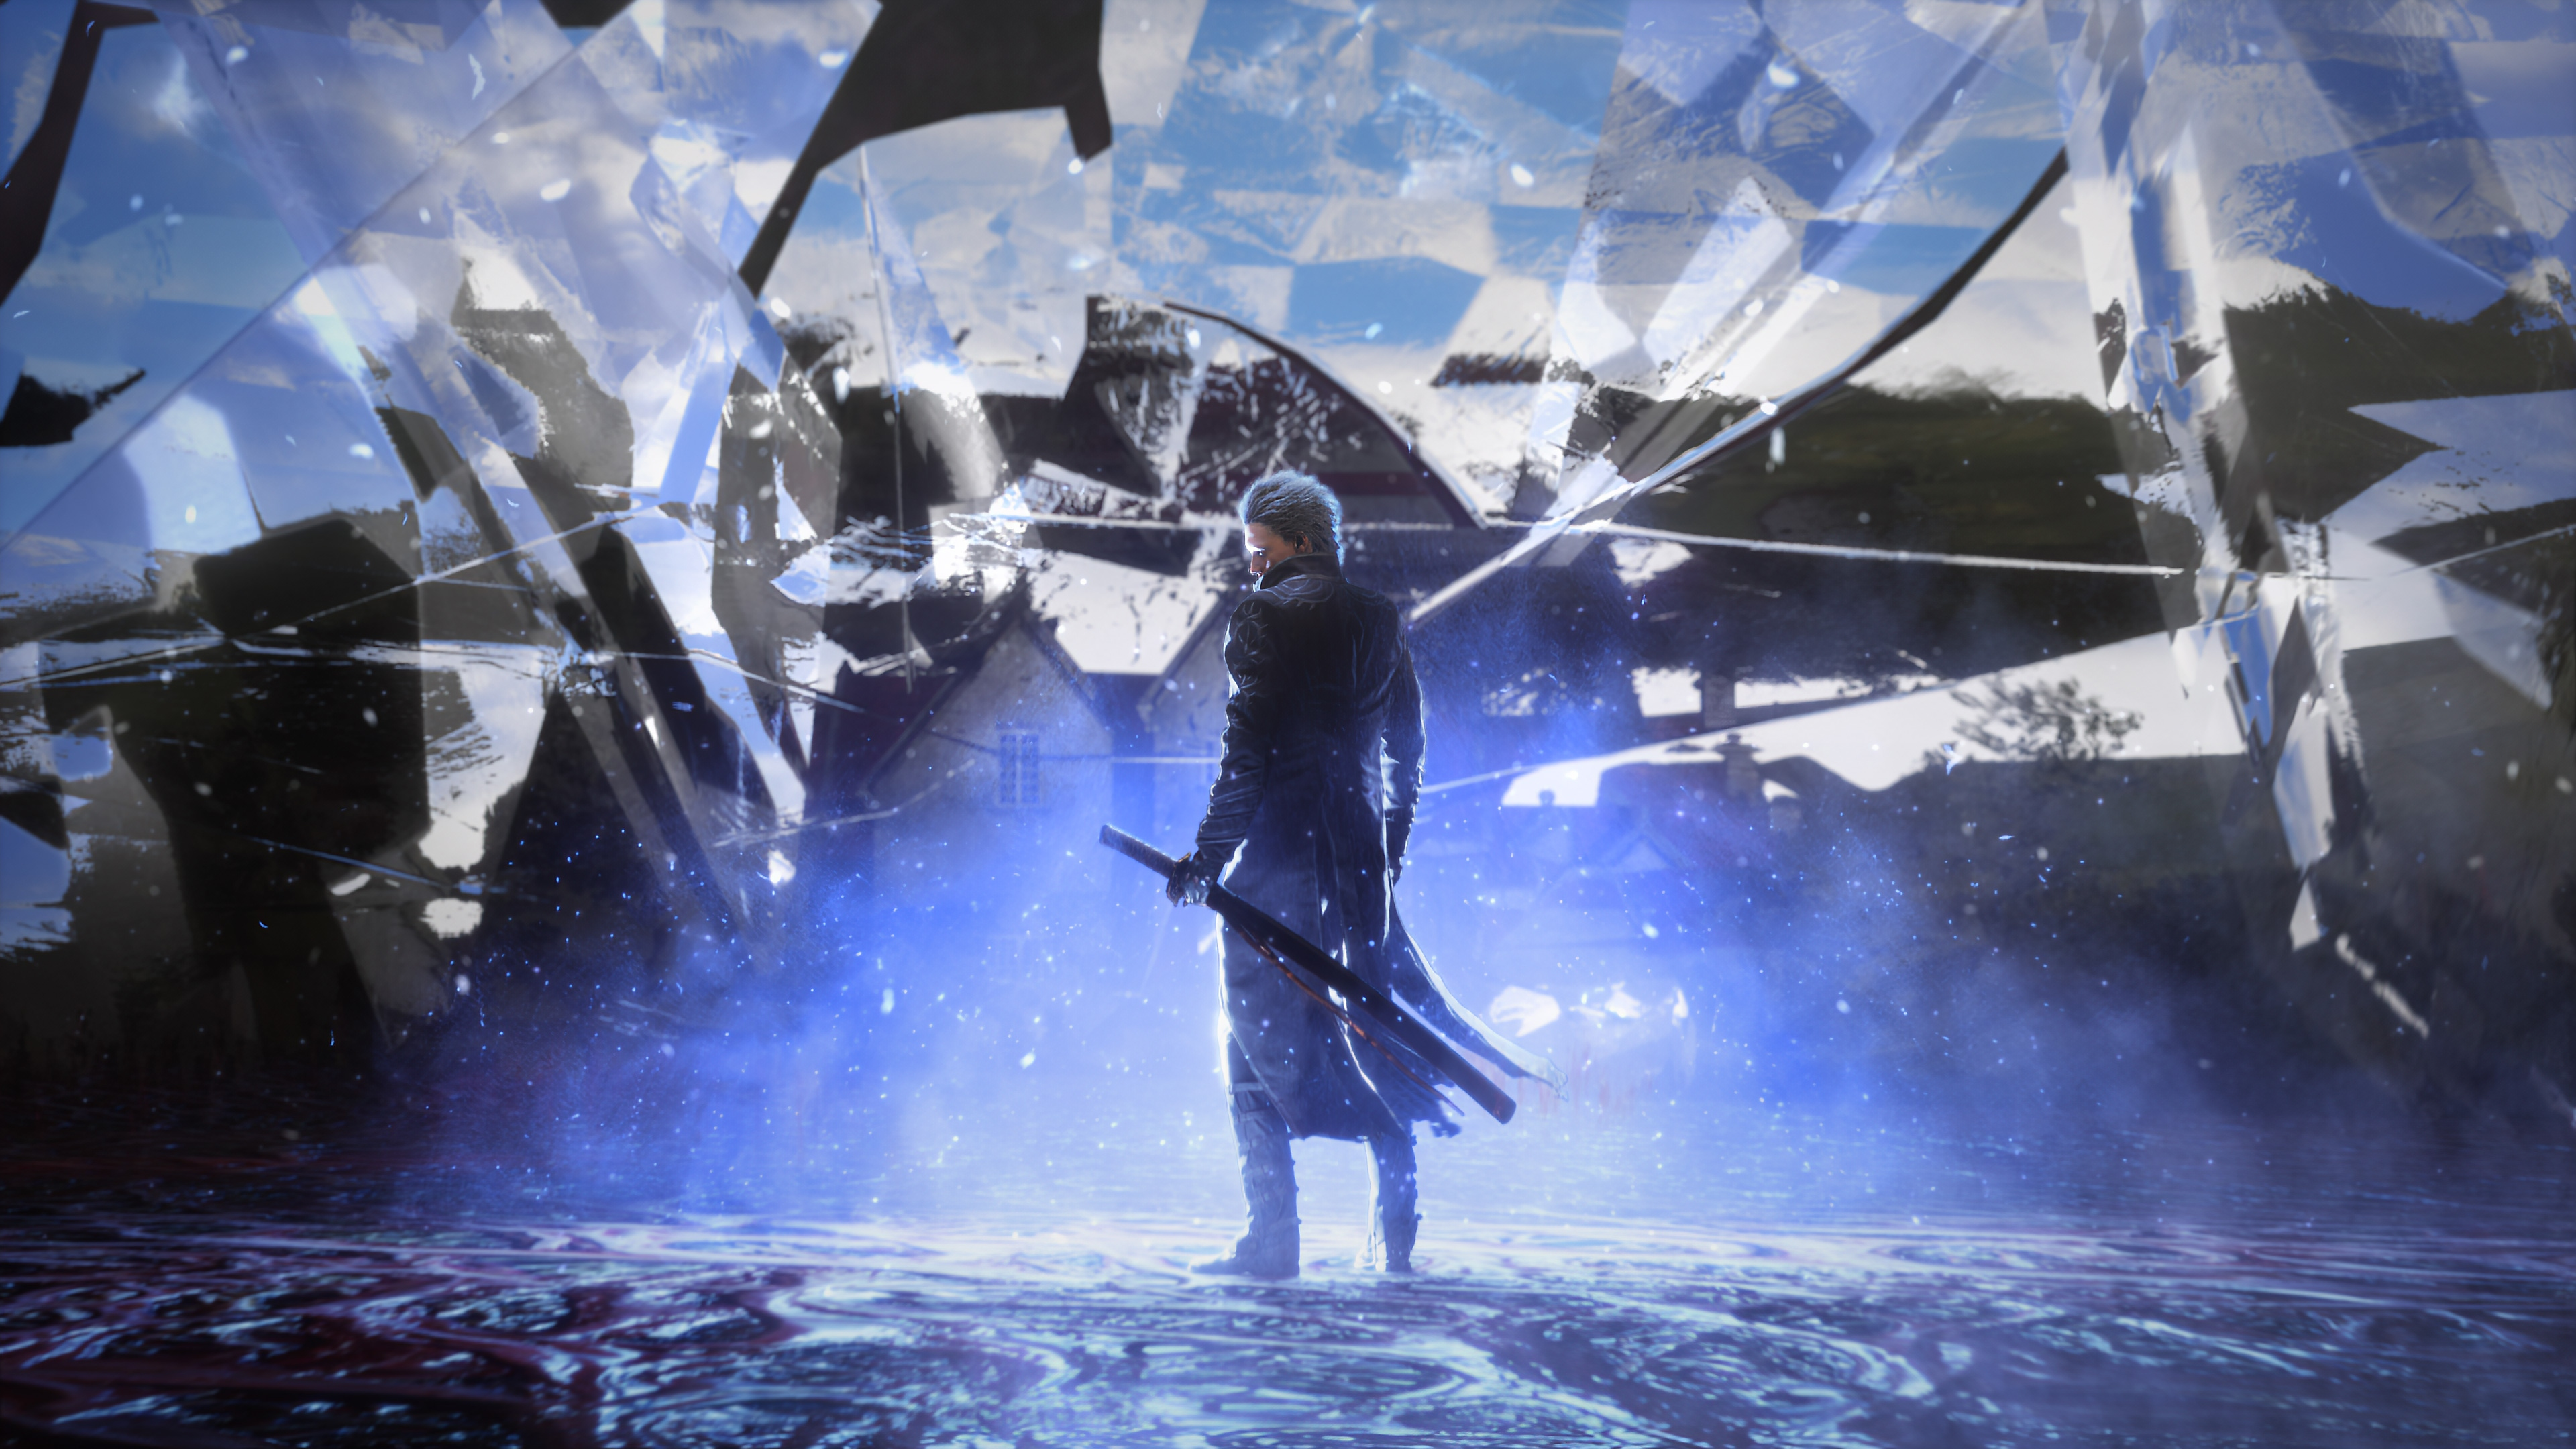 Devil May Cry 5 - Capture d'écran de galerie 1